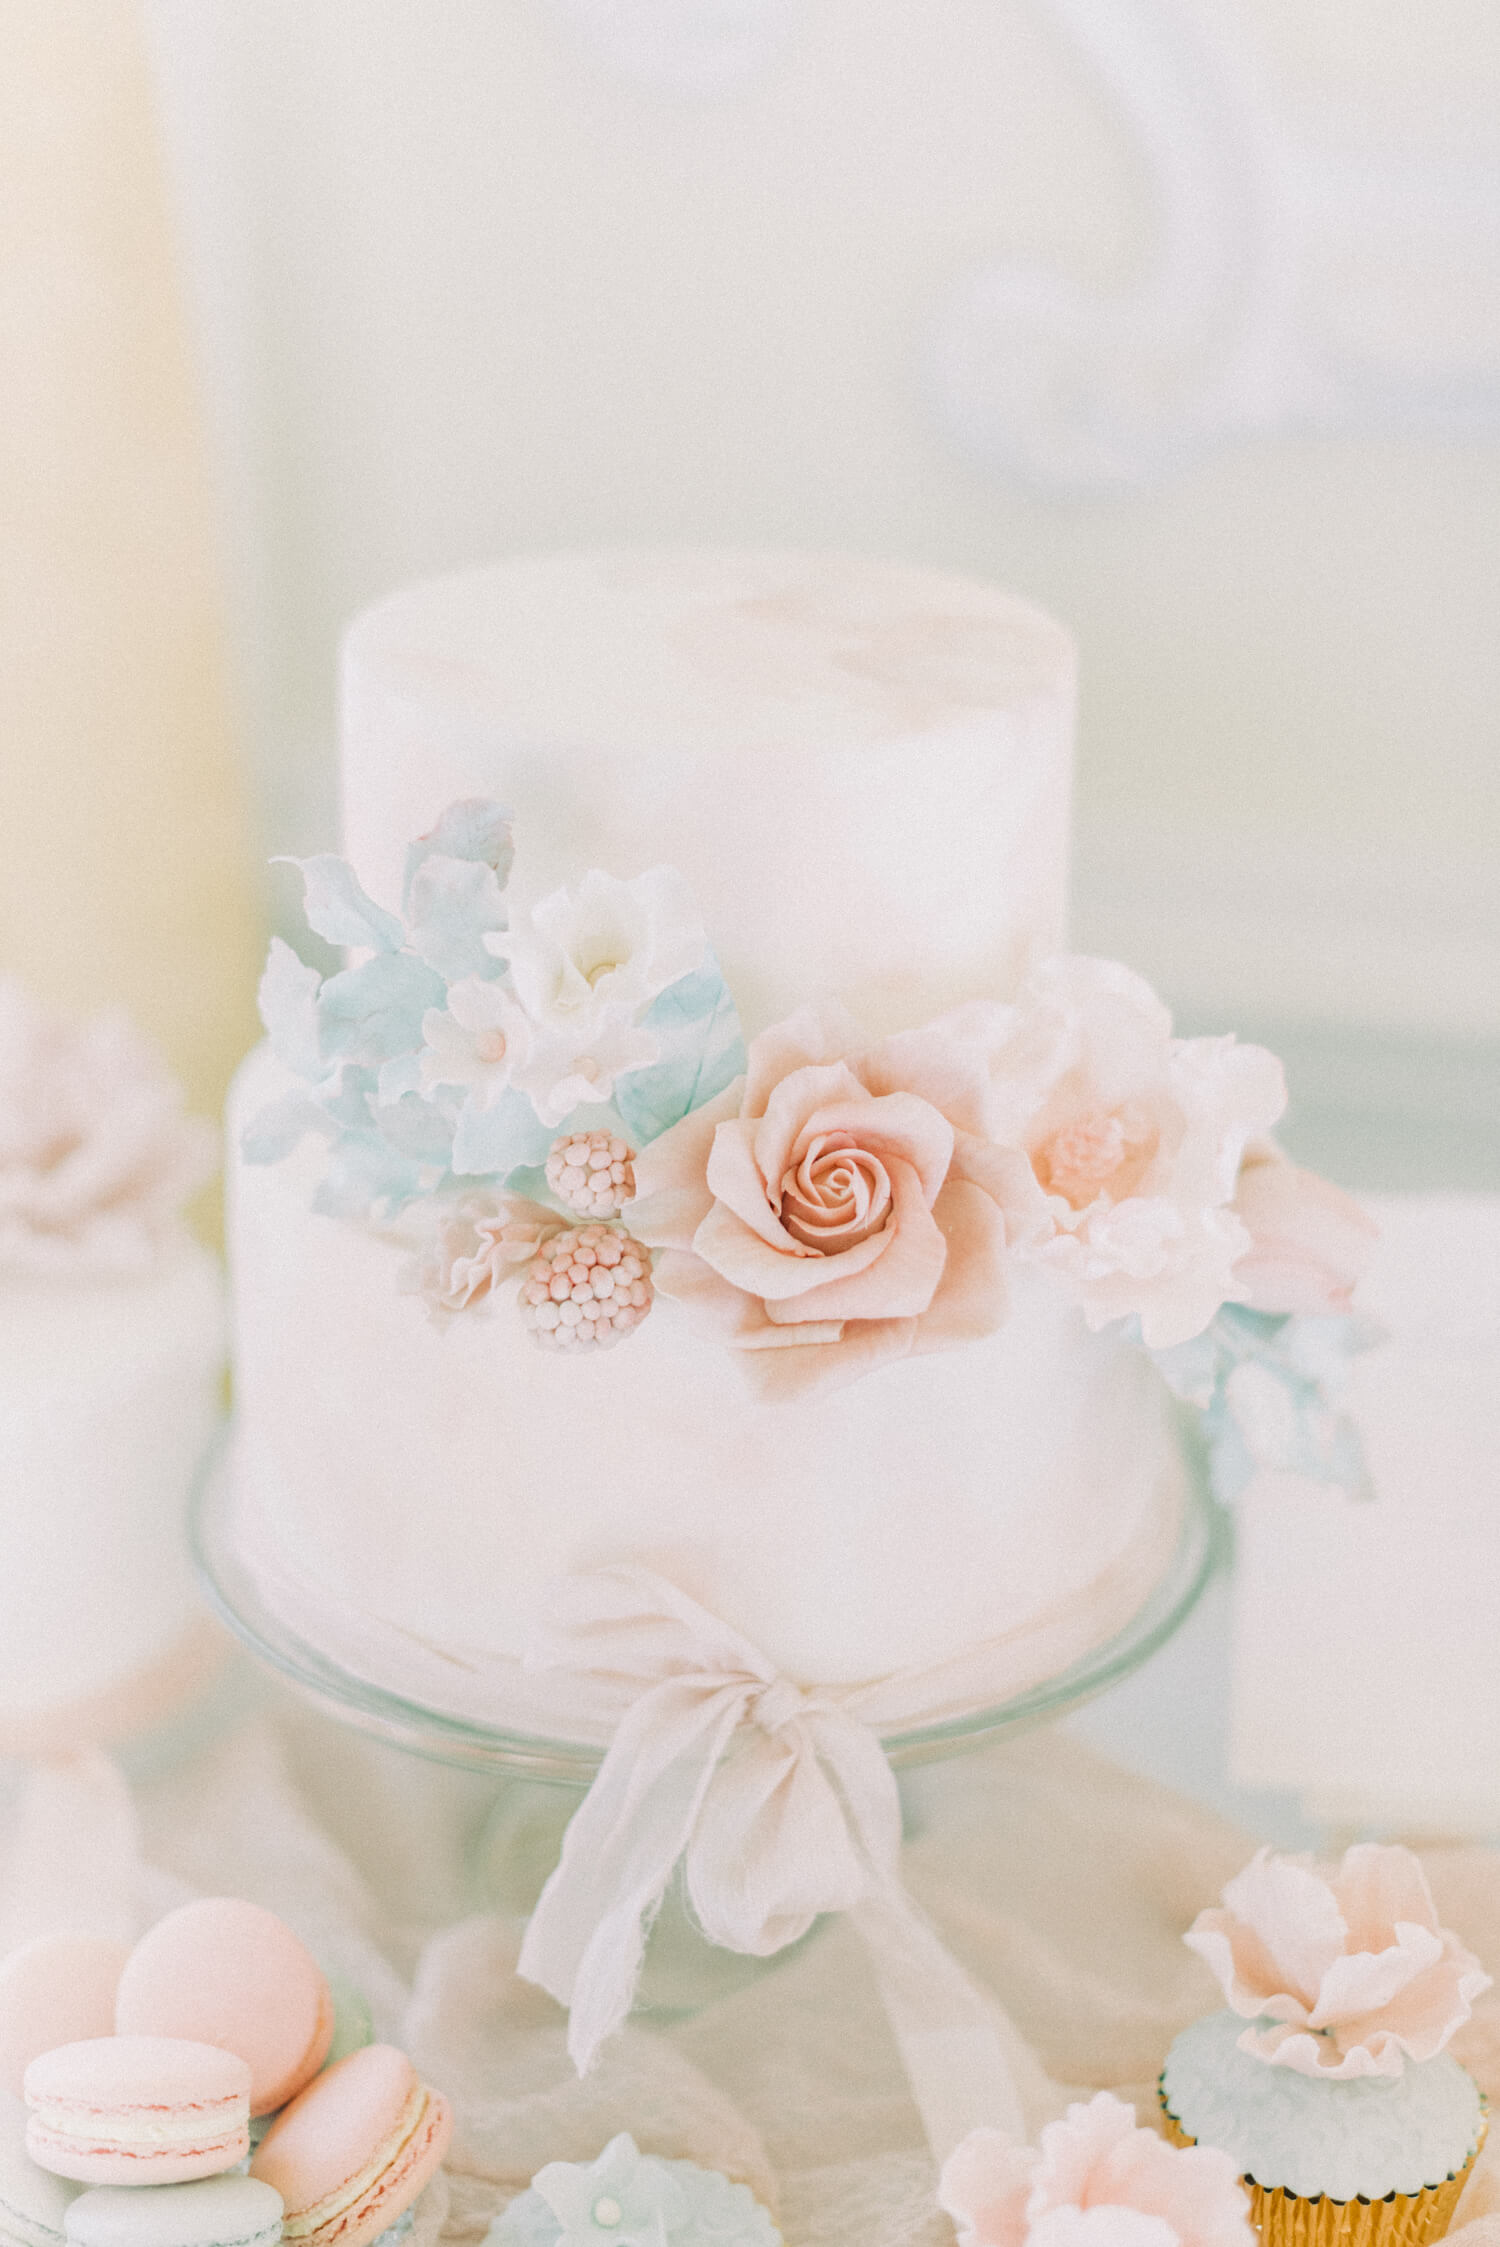 summer wedding cake ideas - peach rose with white smaller flowers, pastel berries and foliage on a two tier wedding cake tied with a hand dyed silk ribbon. Cake by Sadie May Cakes. Photo by Cristina Ilao photography